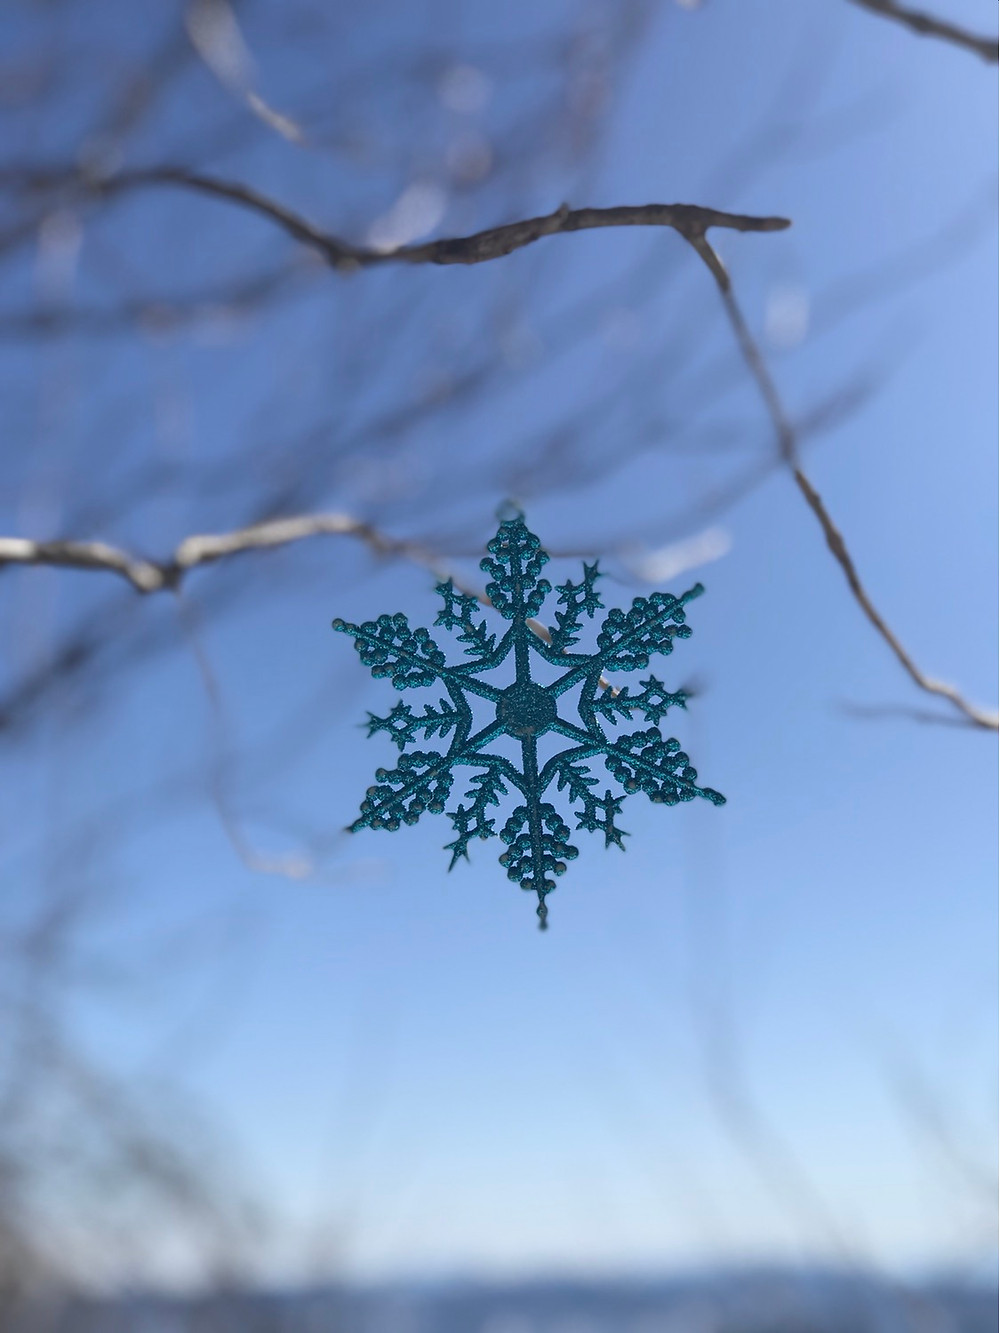 Snowflake someone left in the tree at summit